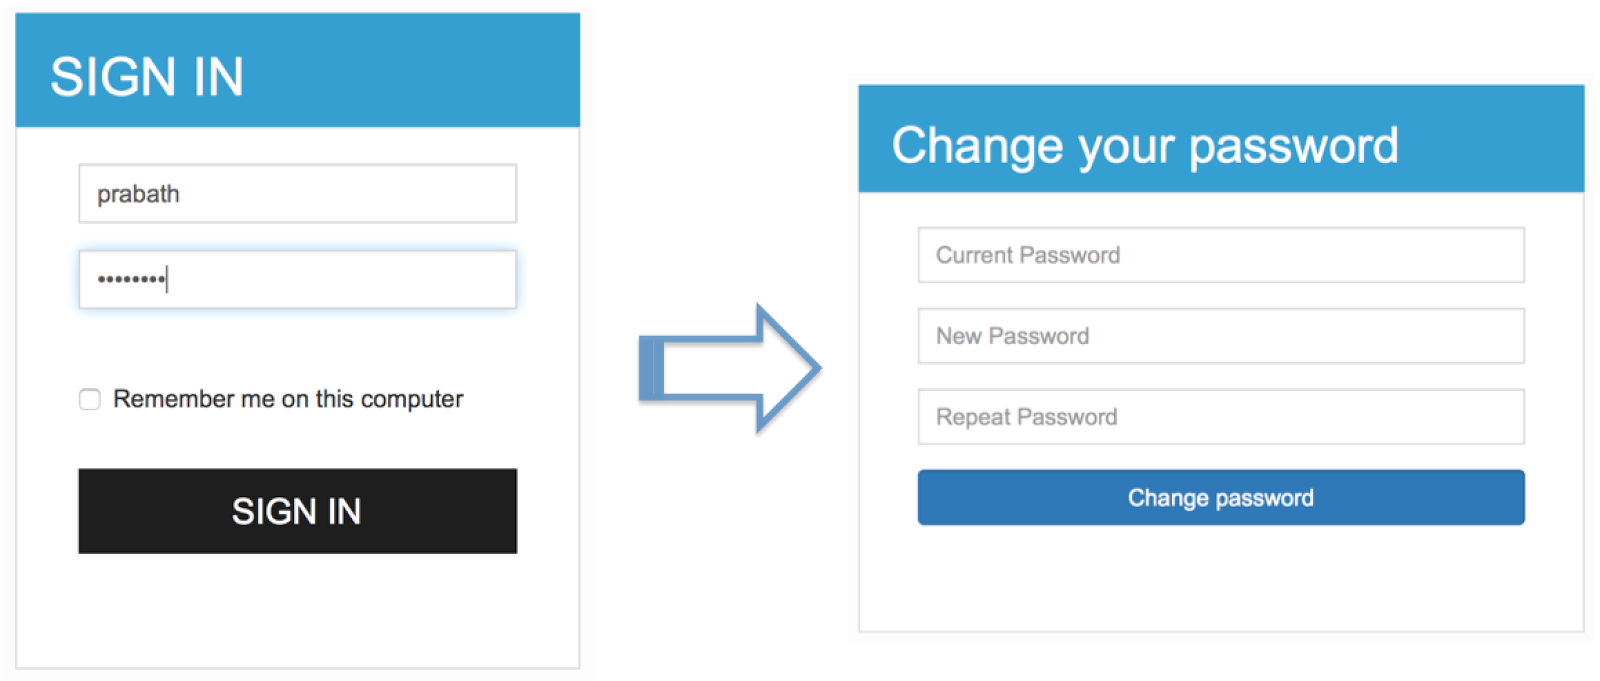 Enforce Password Reset for Expired Passwords During the